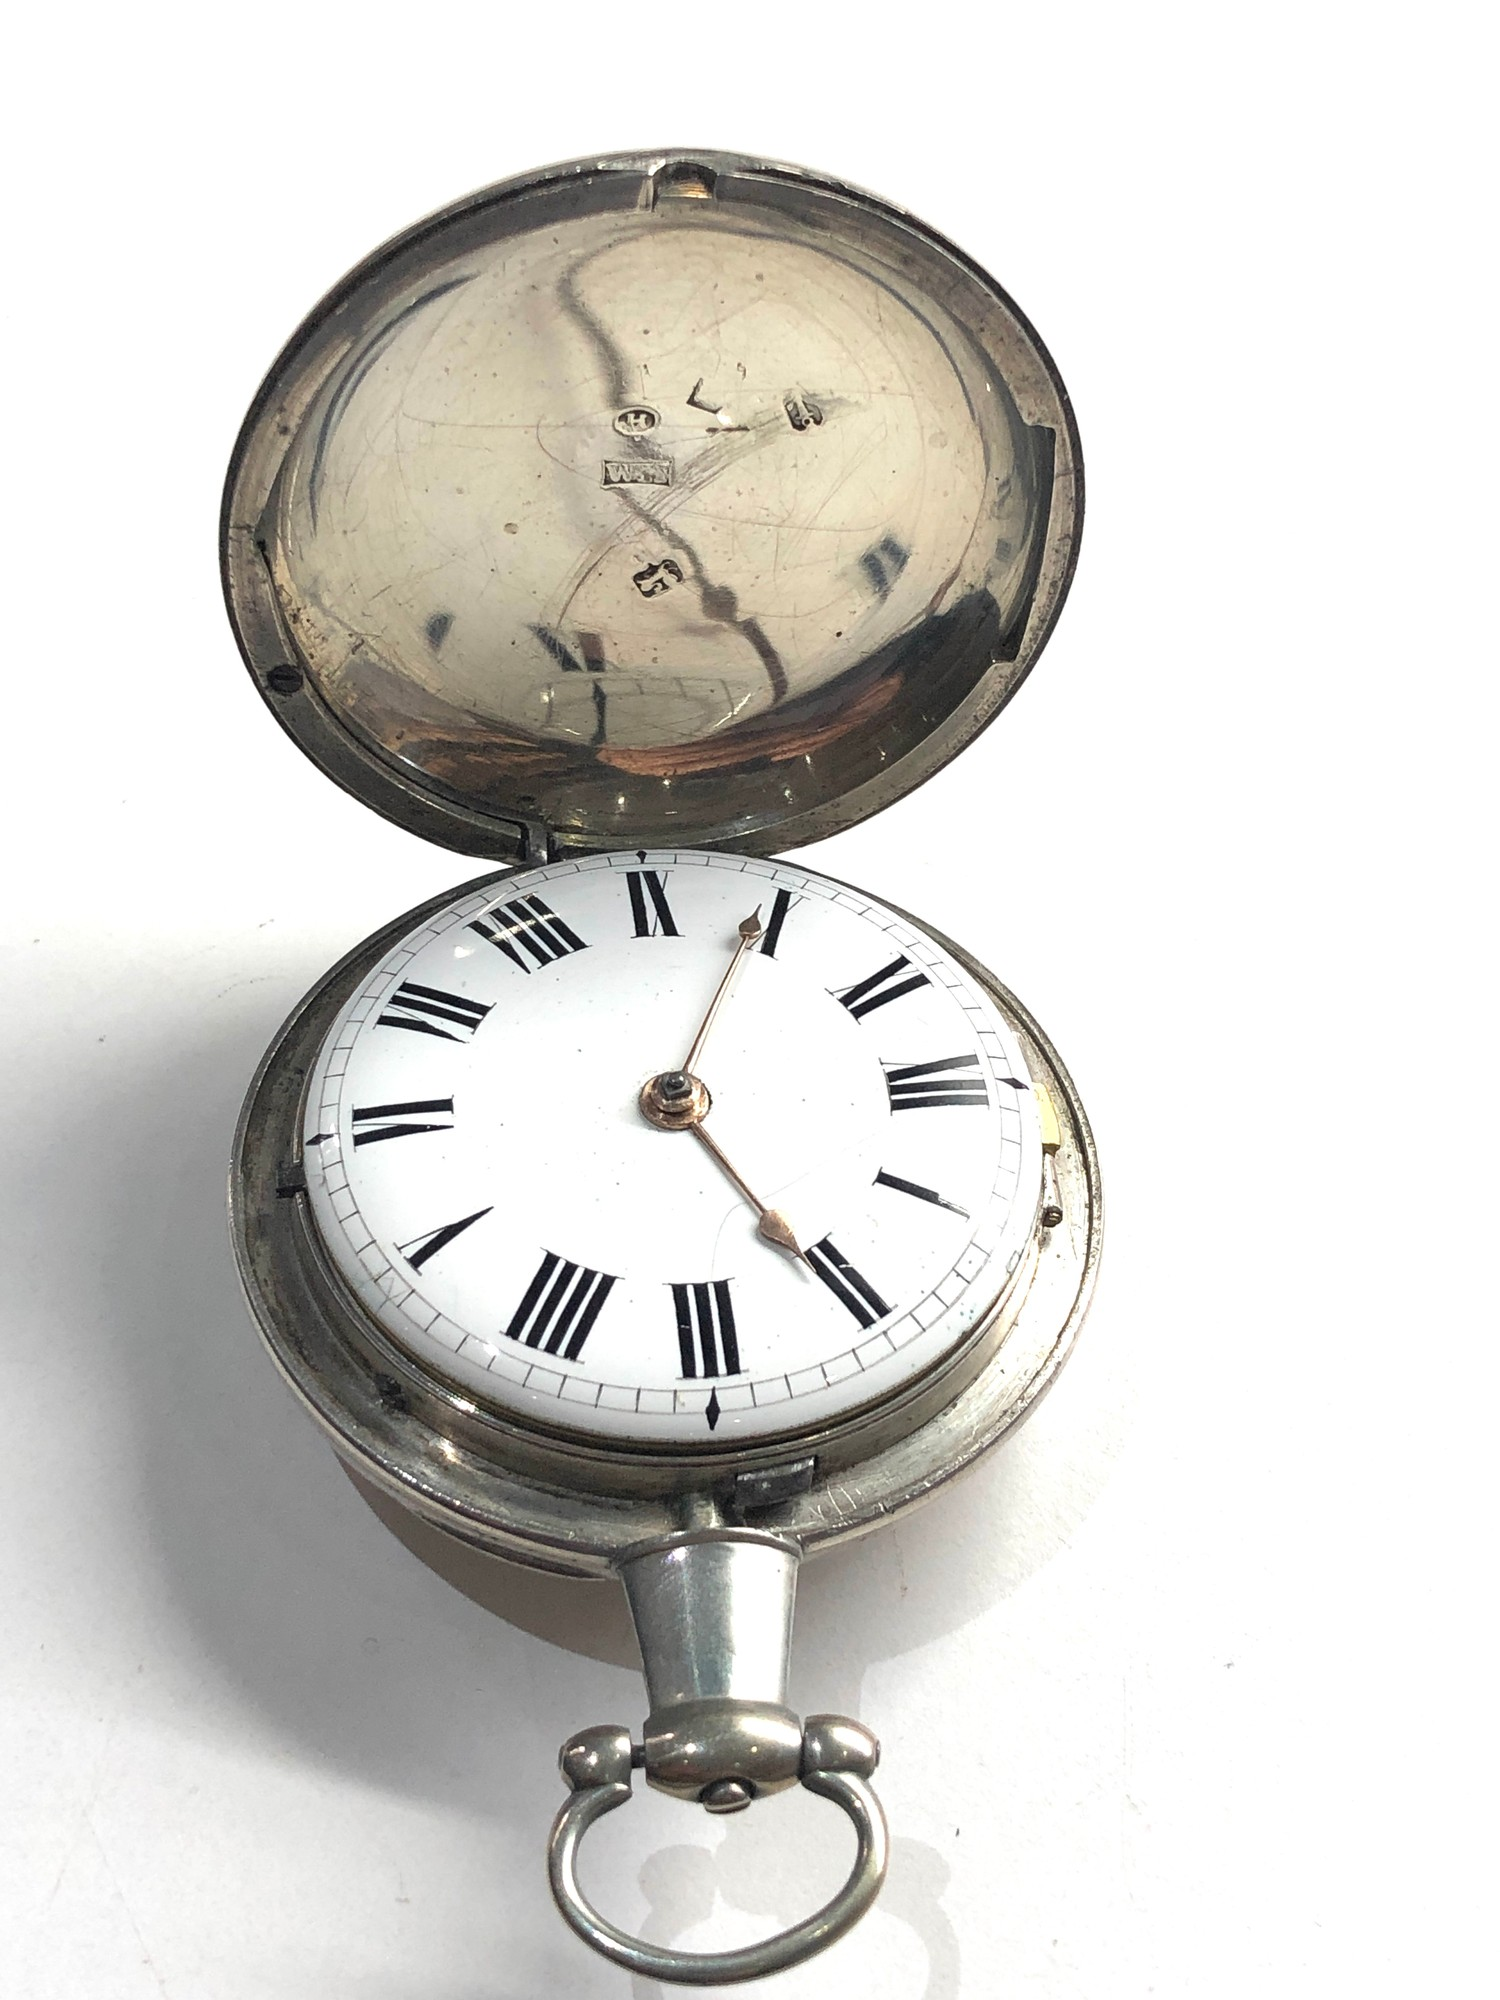 Fine antique silver full hunter case verge fusee pocket watch by Rob Turnball Greenock watch is in - Image 2 of 9